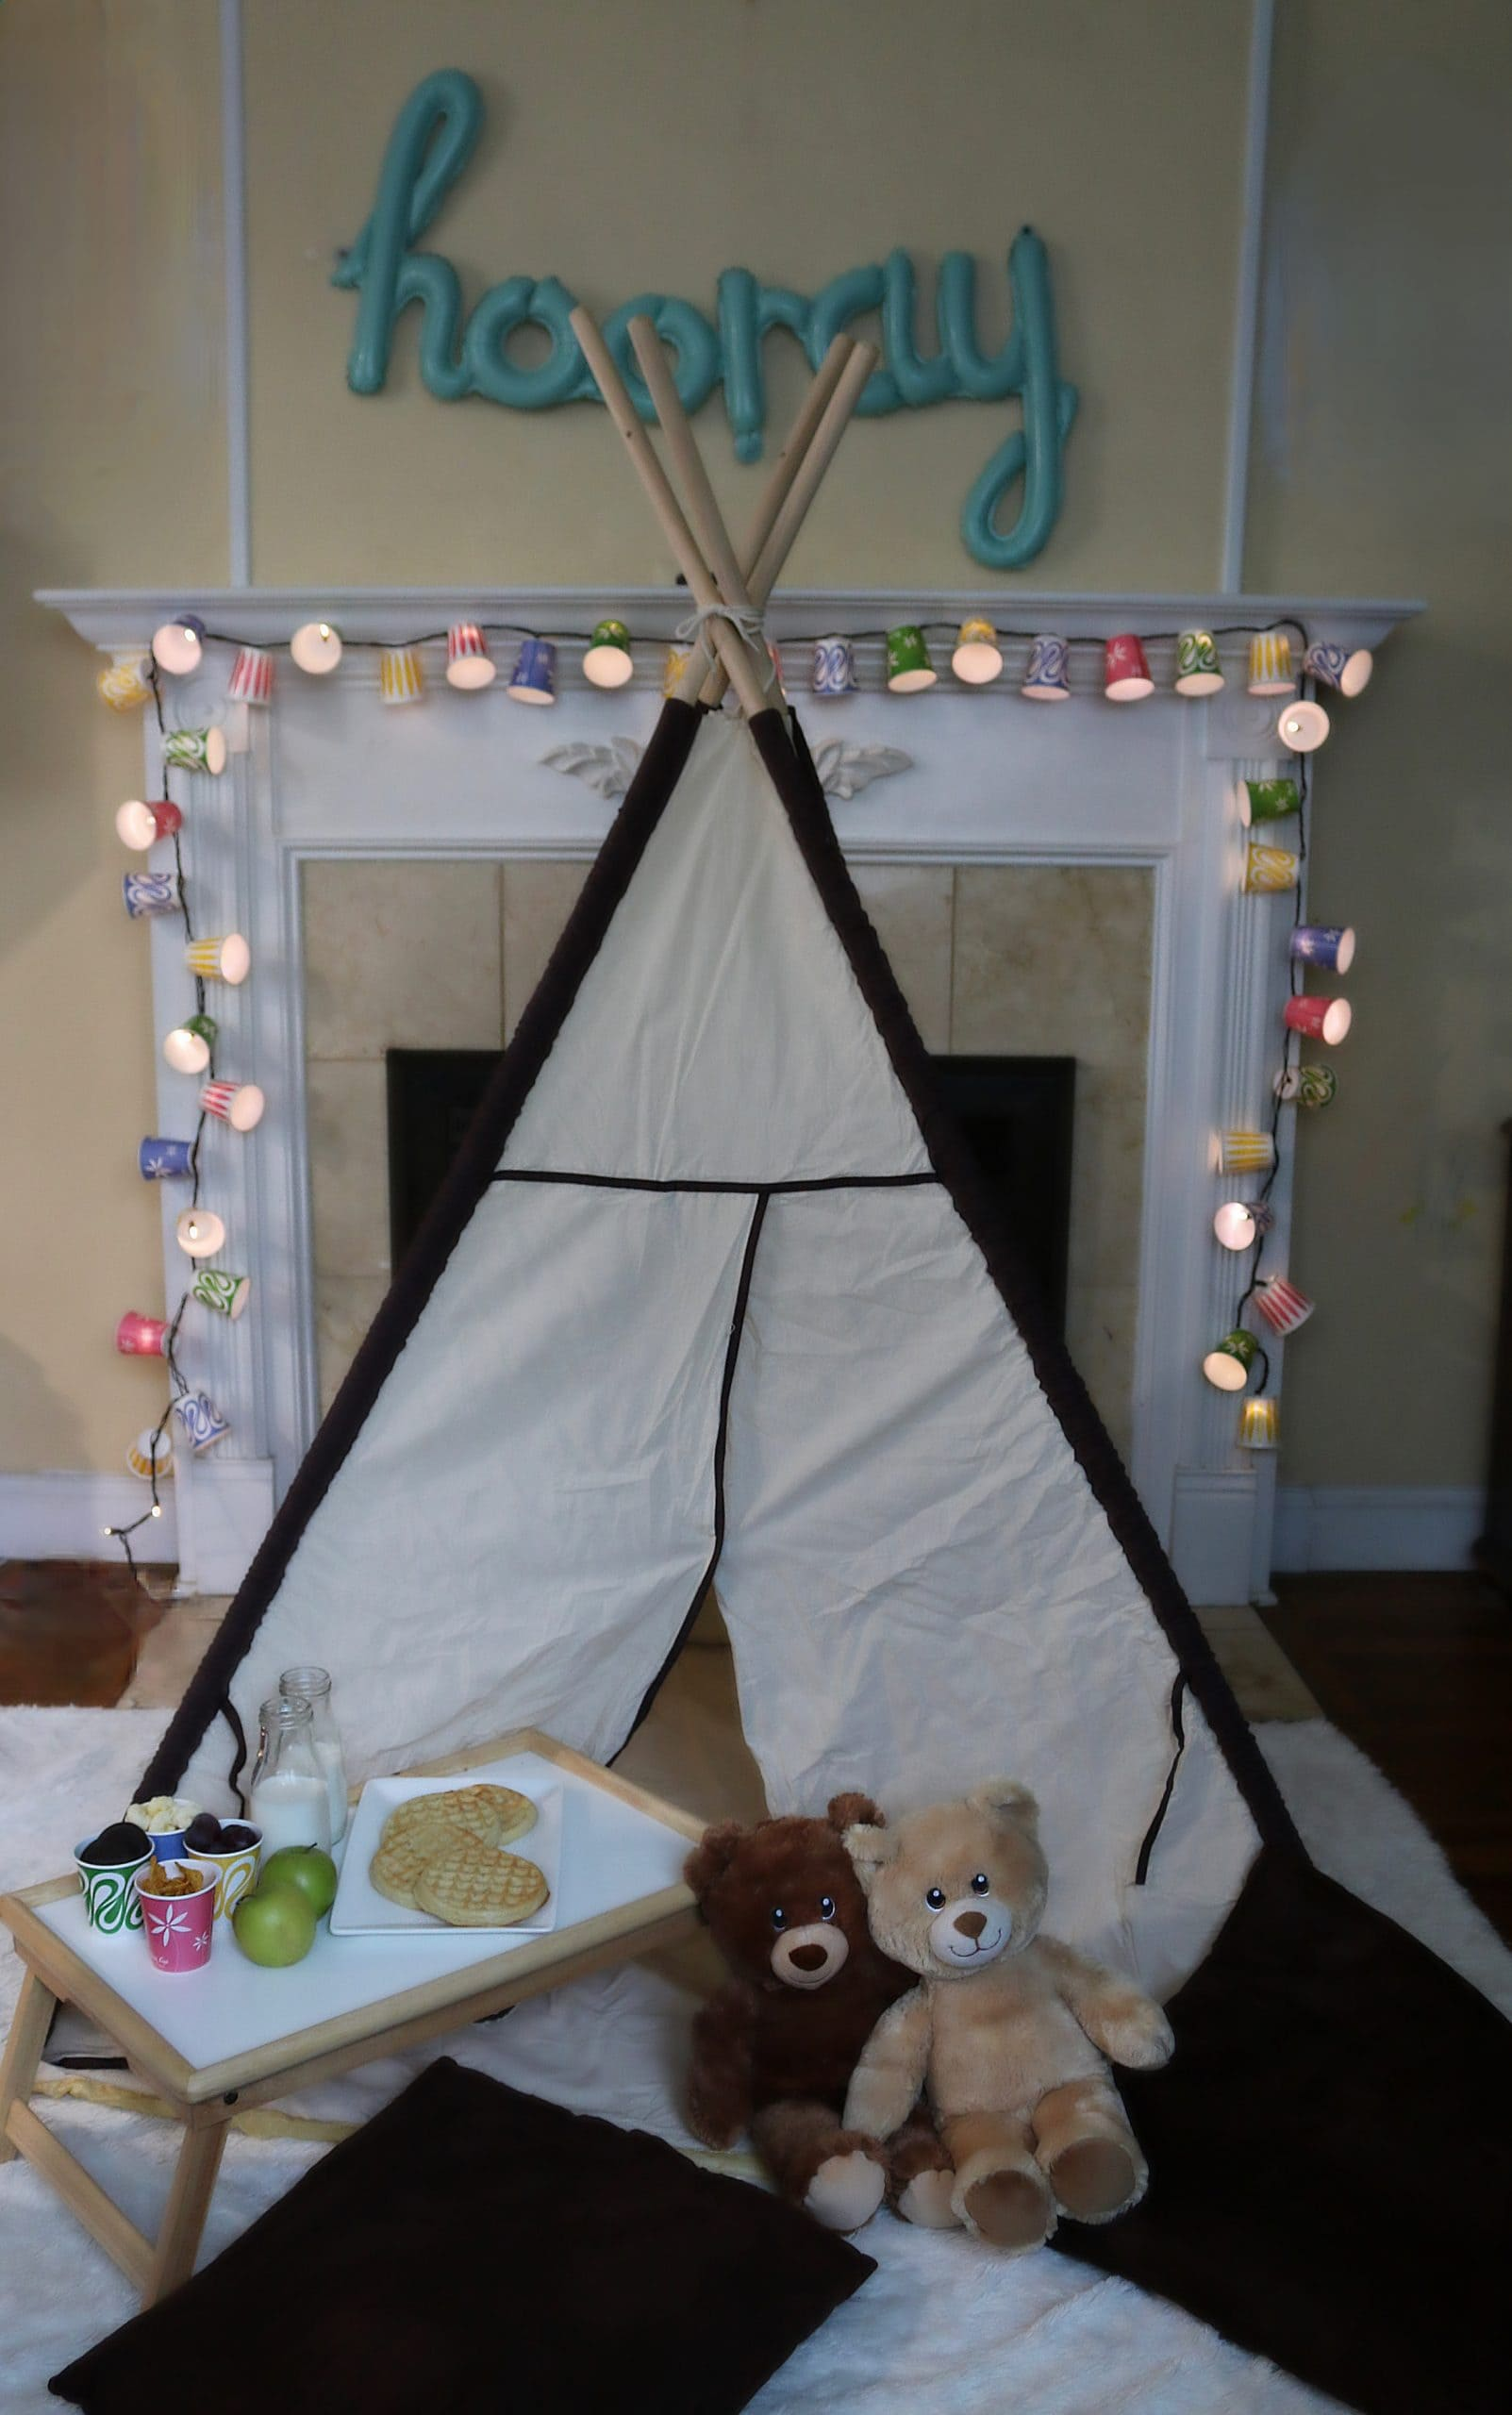 DIY-Decor-with-String-Lights- Dixie-Cups